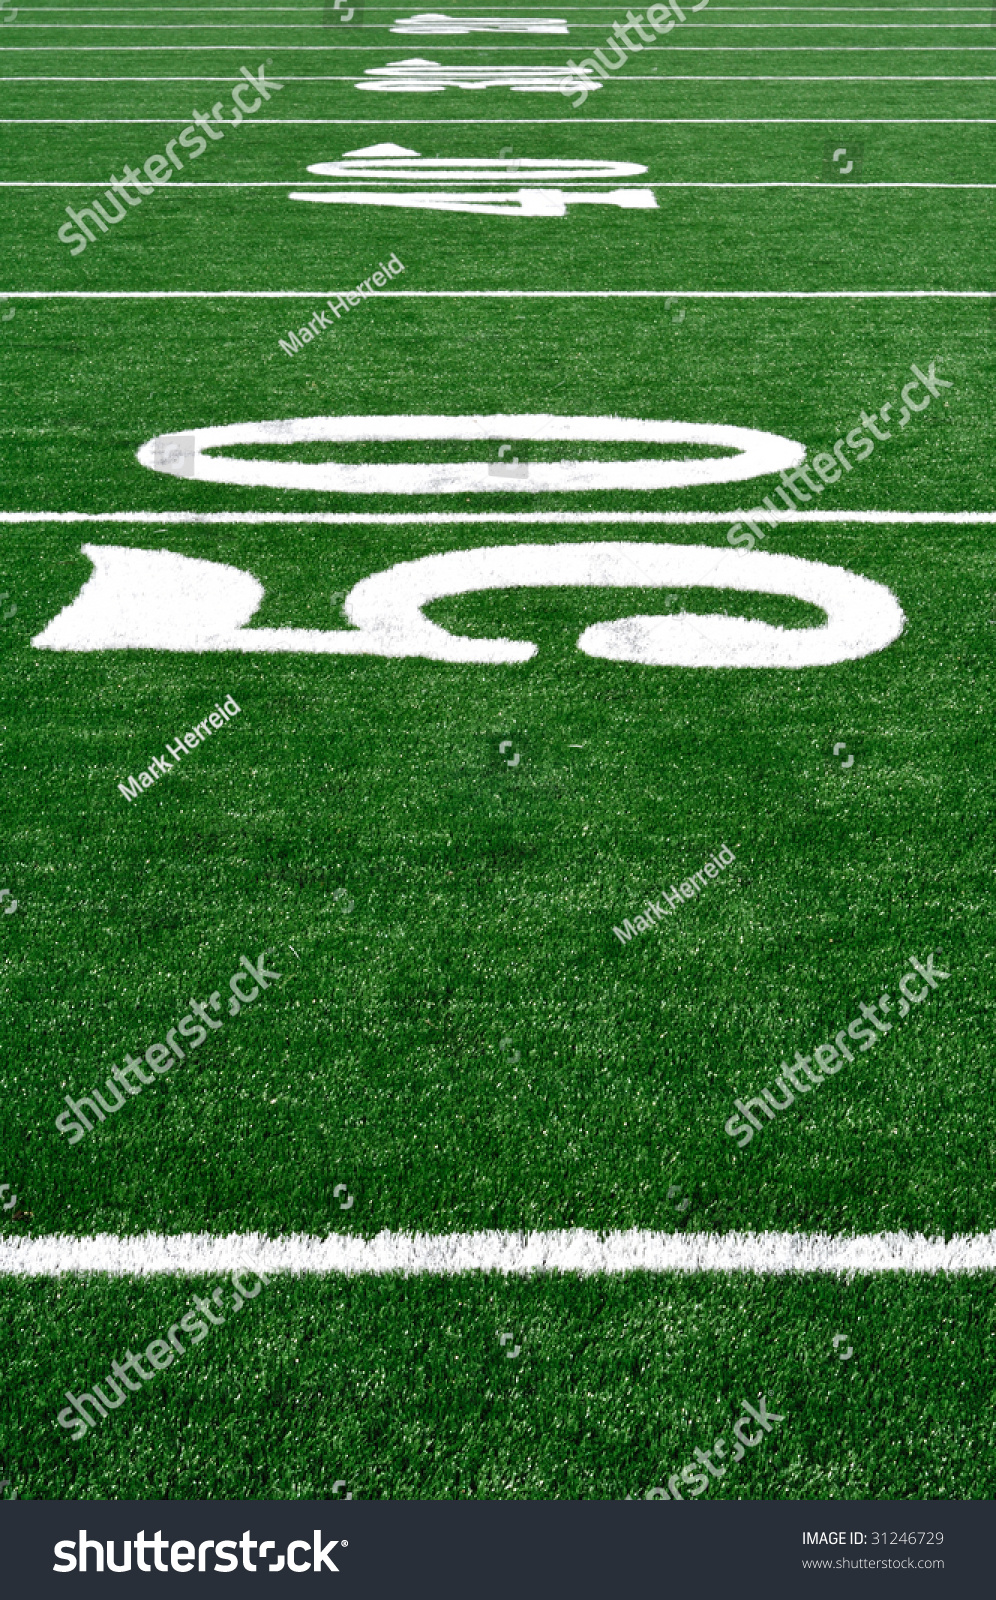 50 yard line on american football field  copy space  vertical stock photo 31246729   shutterstock